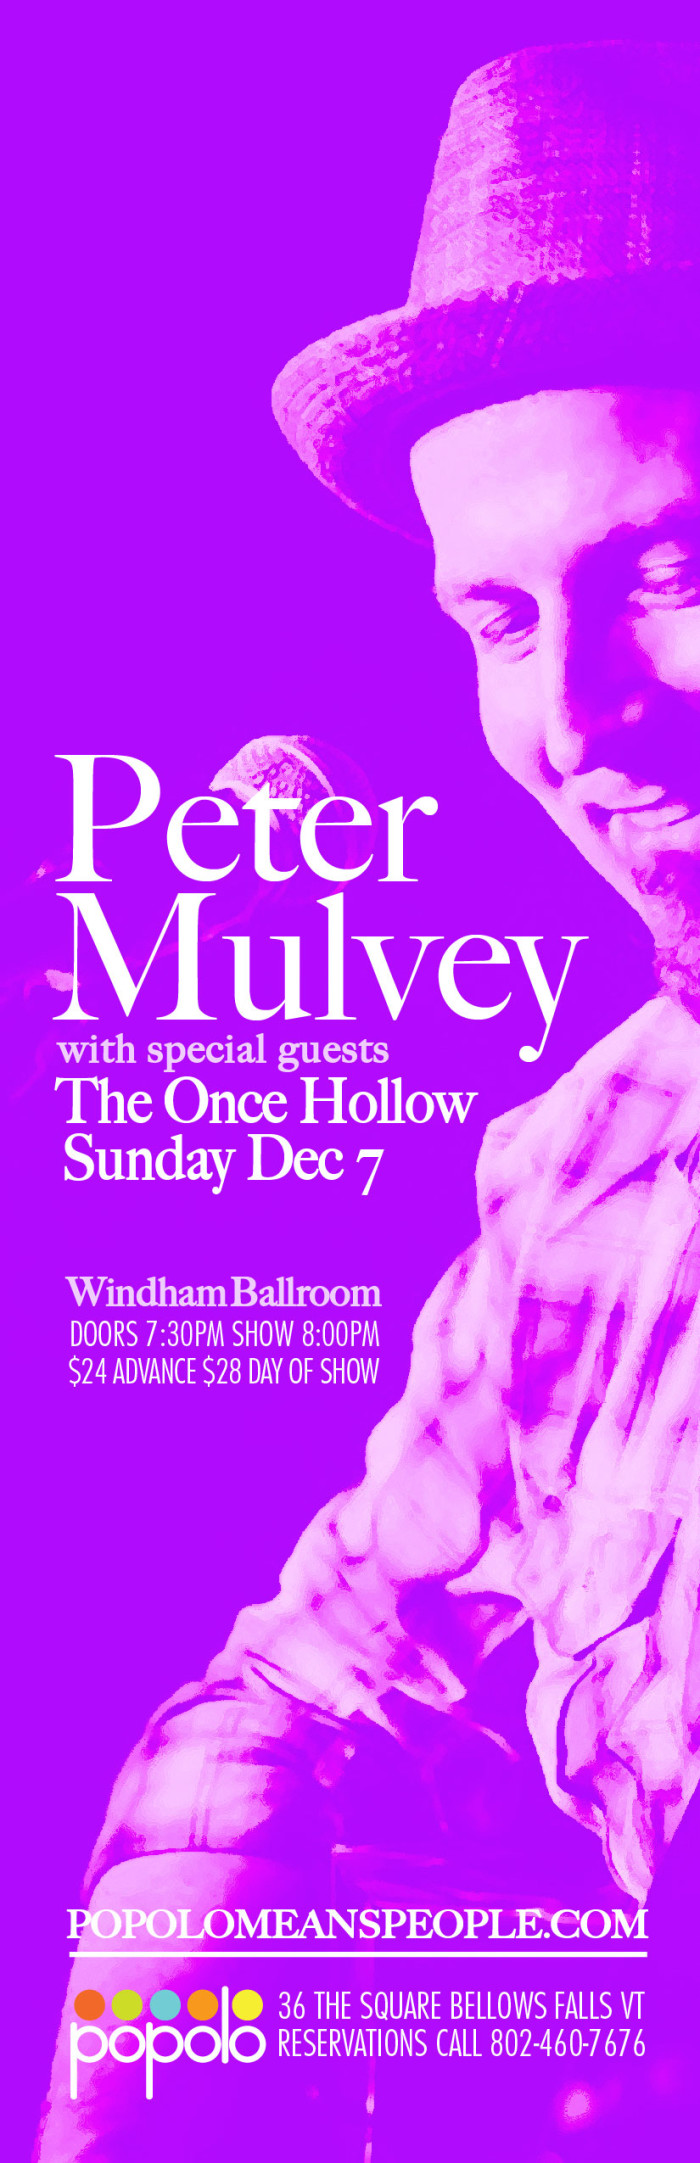 mulveyposter20141207-01